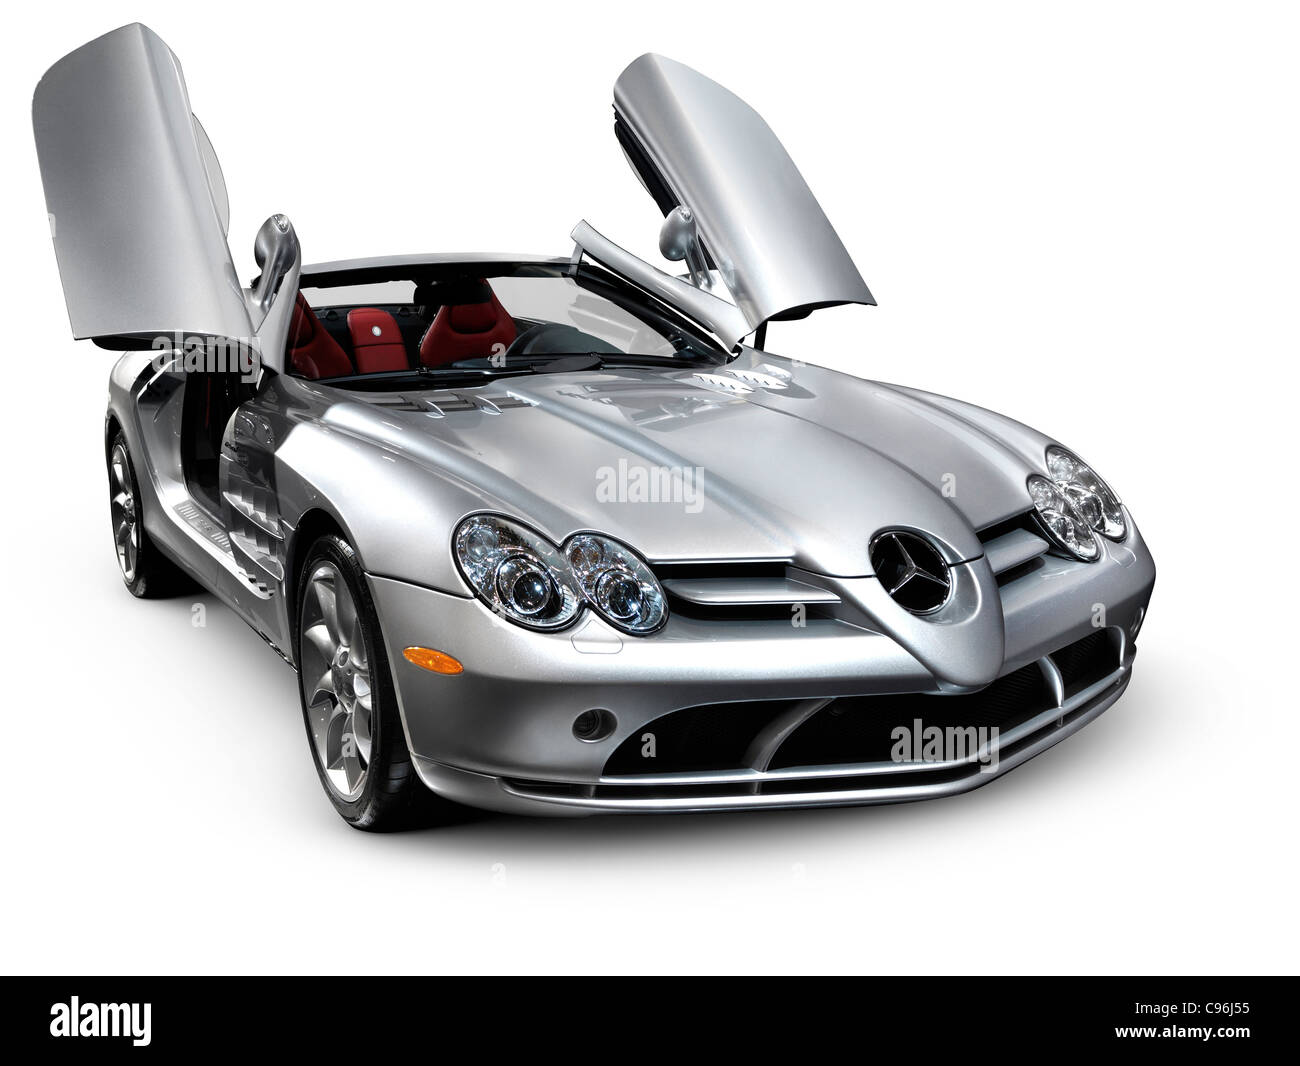 Mercedes Benz SLR McLaren Roadster Anglo-German sports car ...